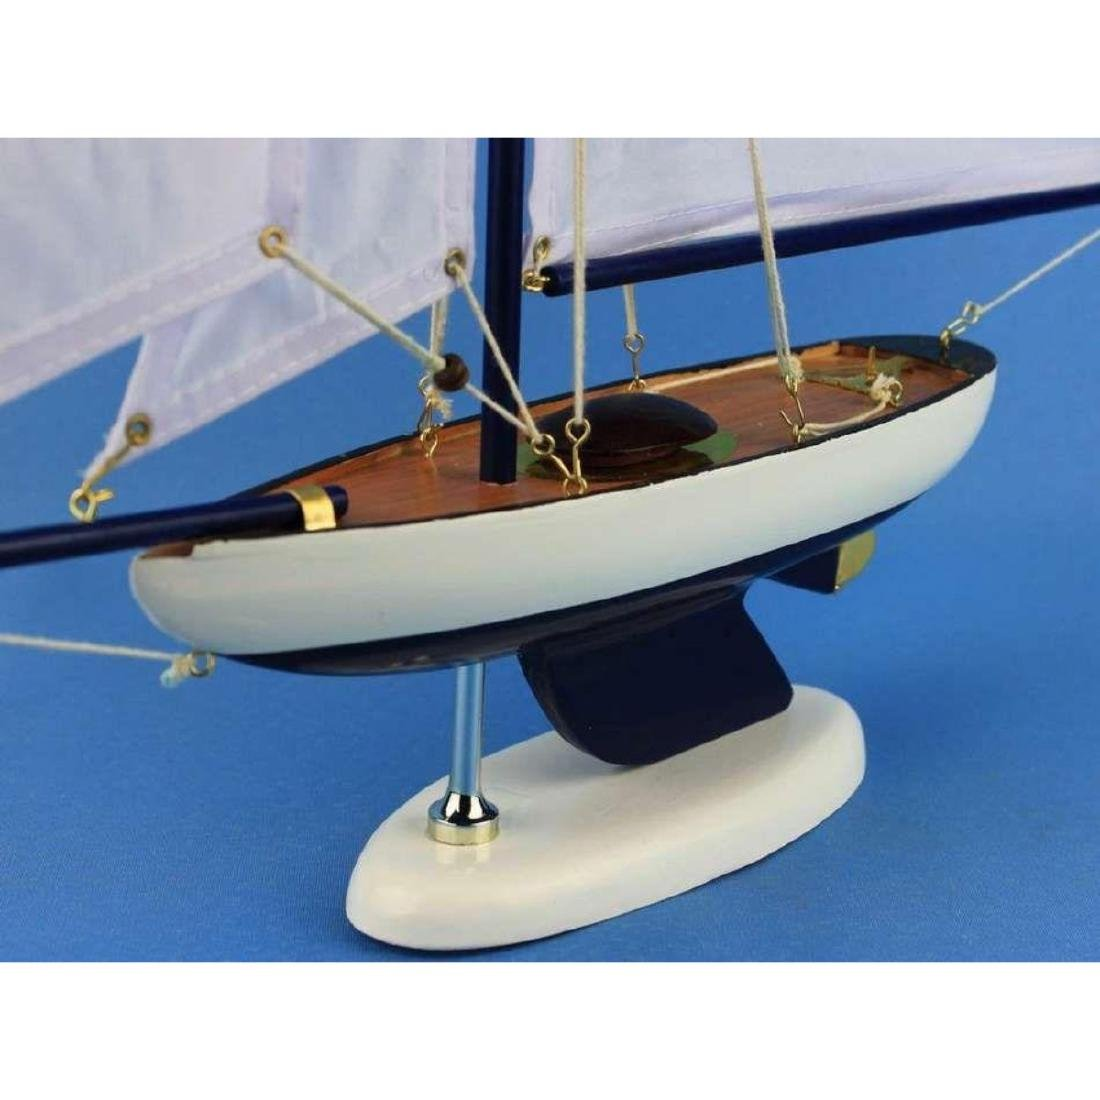 Wooden Bermuda Sloop Dark Blue - White Sails Model - 3